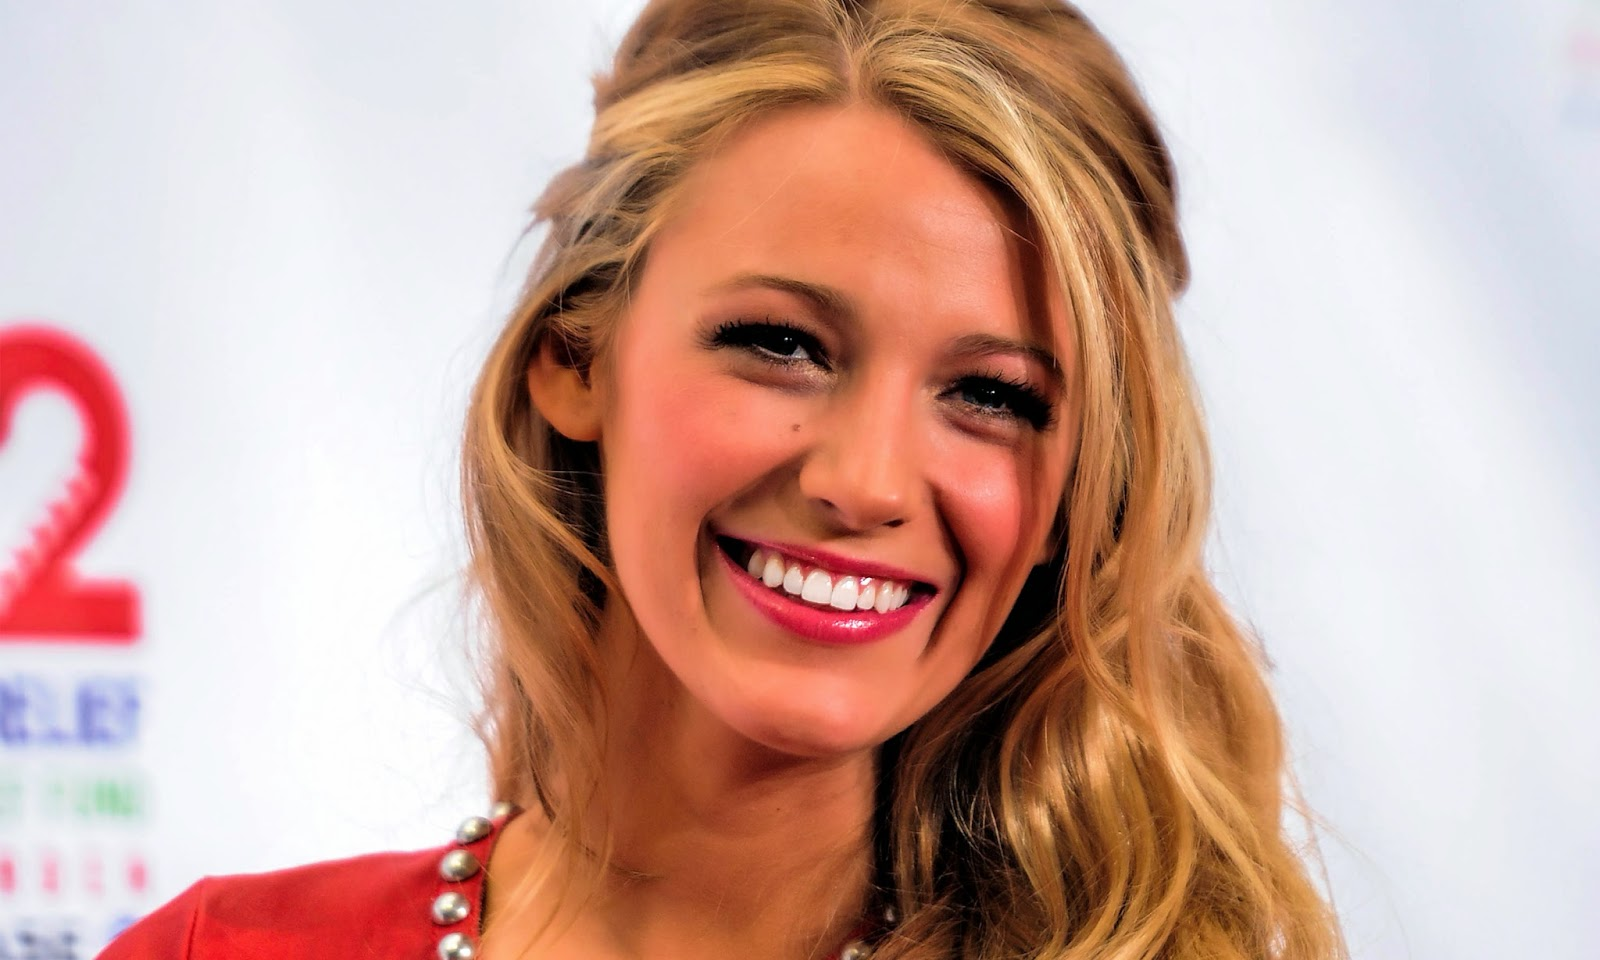 Amazing Blake Lively Smile Background Free Desktop Mobile Hd Pictures